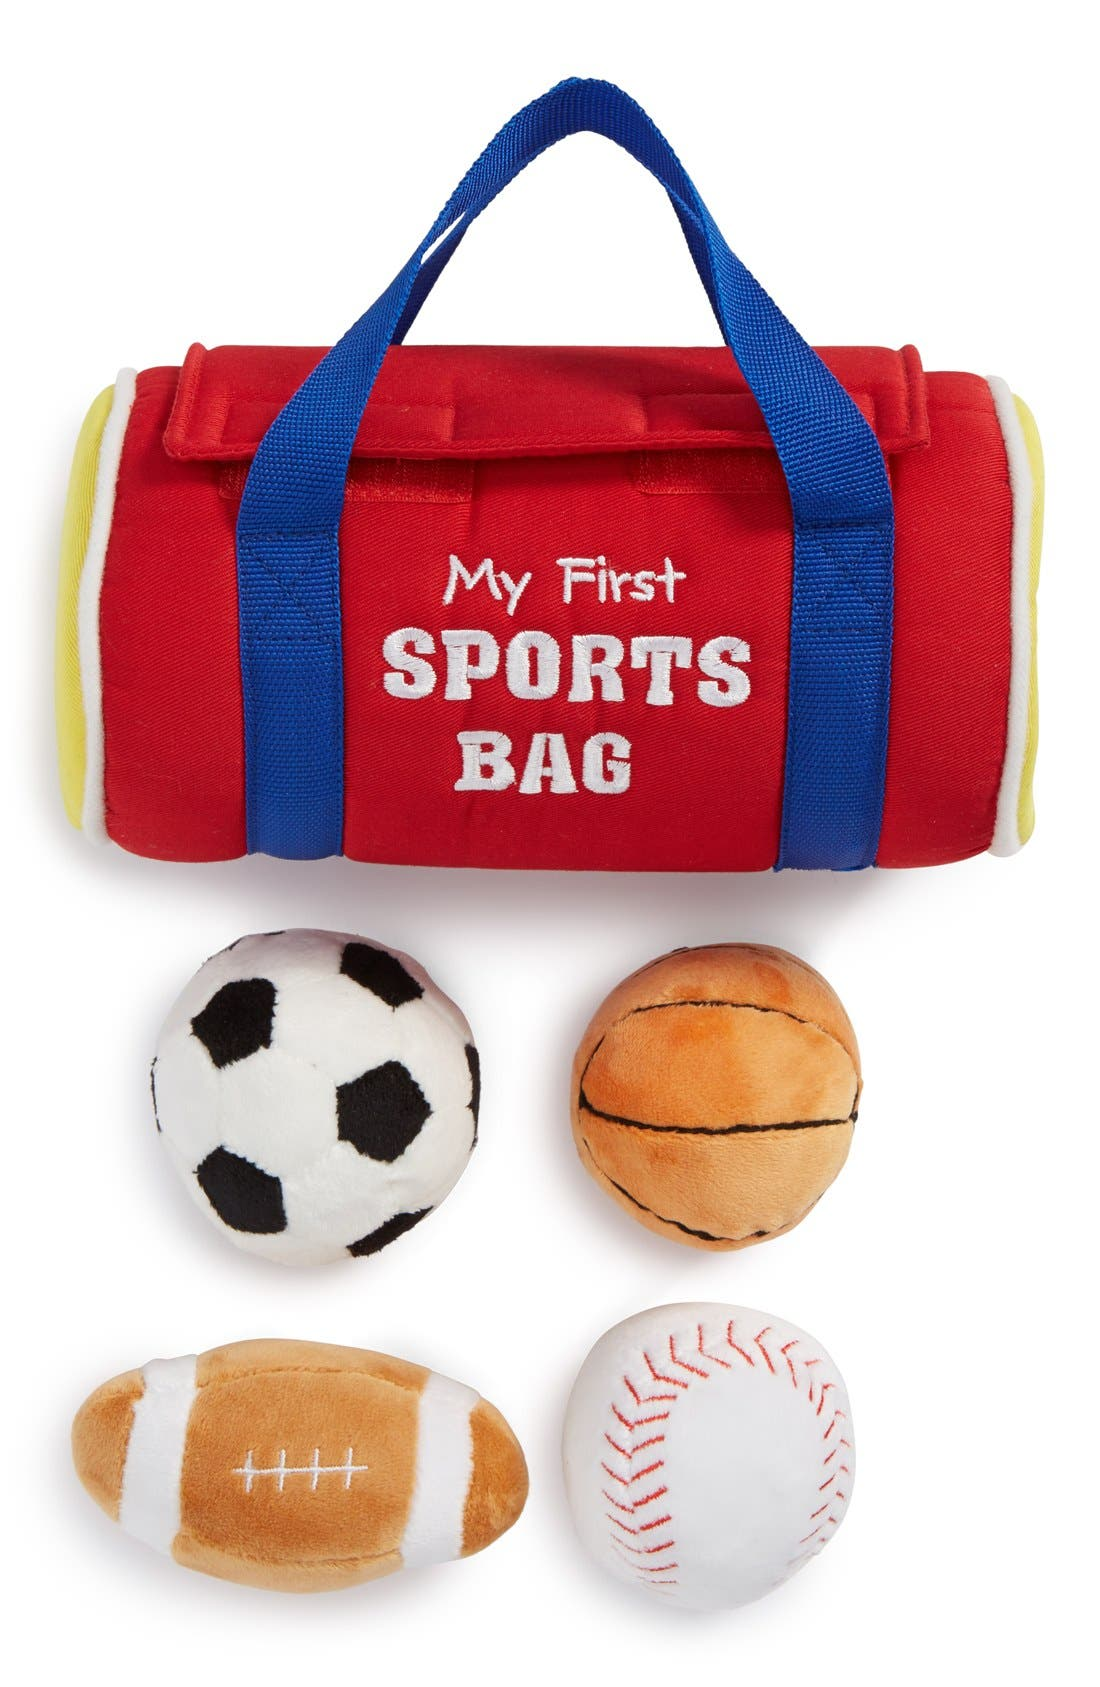 Baby Gund 'My First Sports Bag' Play Set,                         Main,                         color, Red